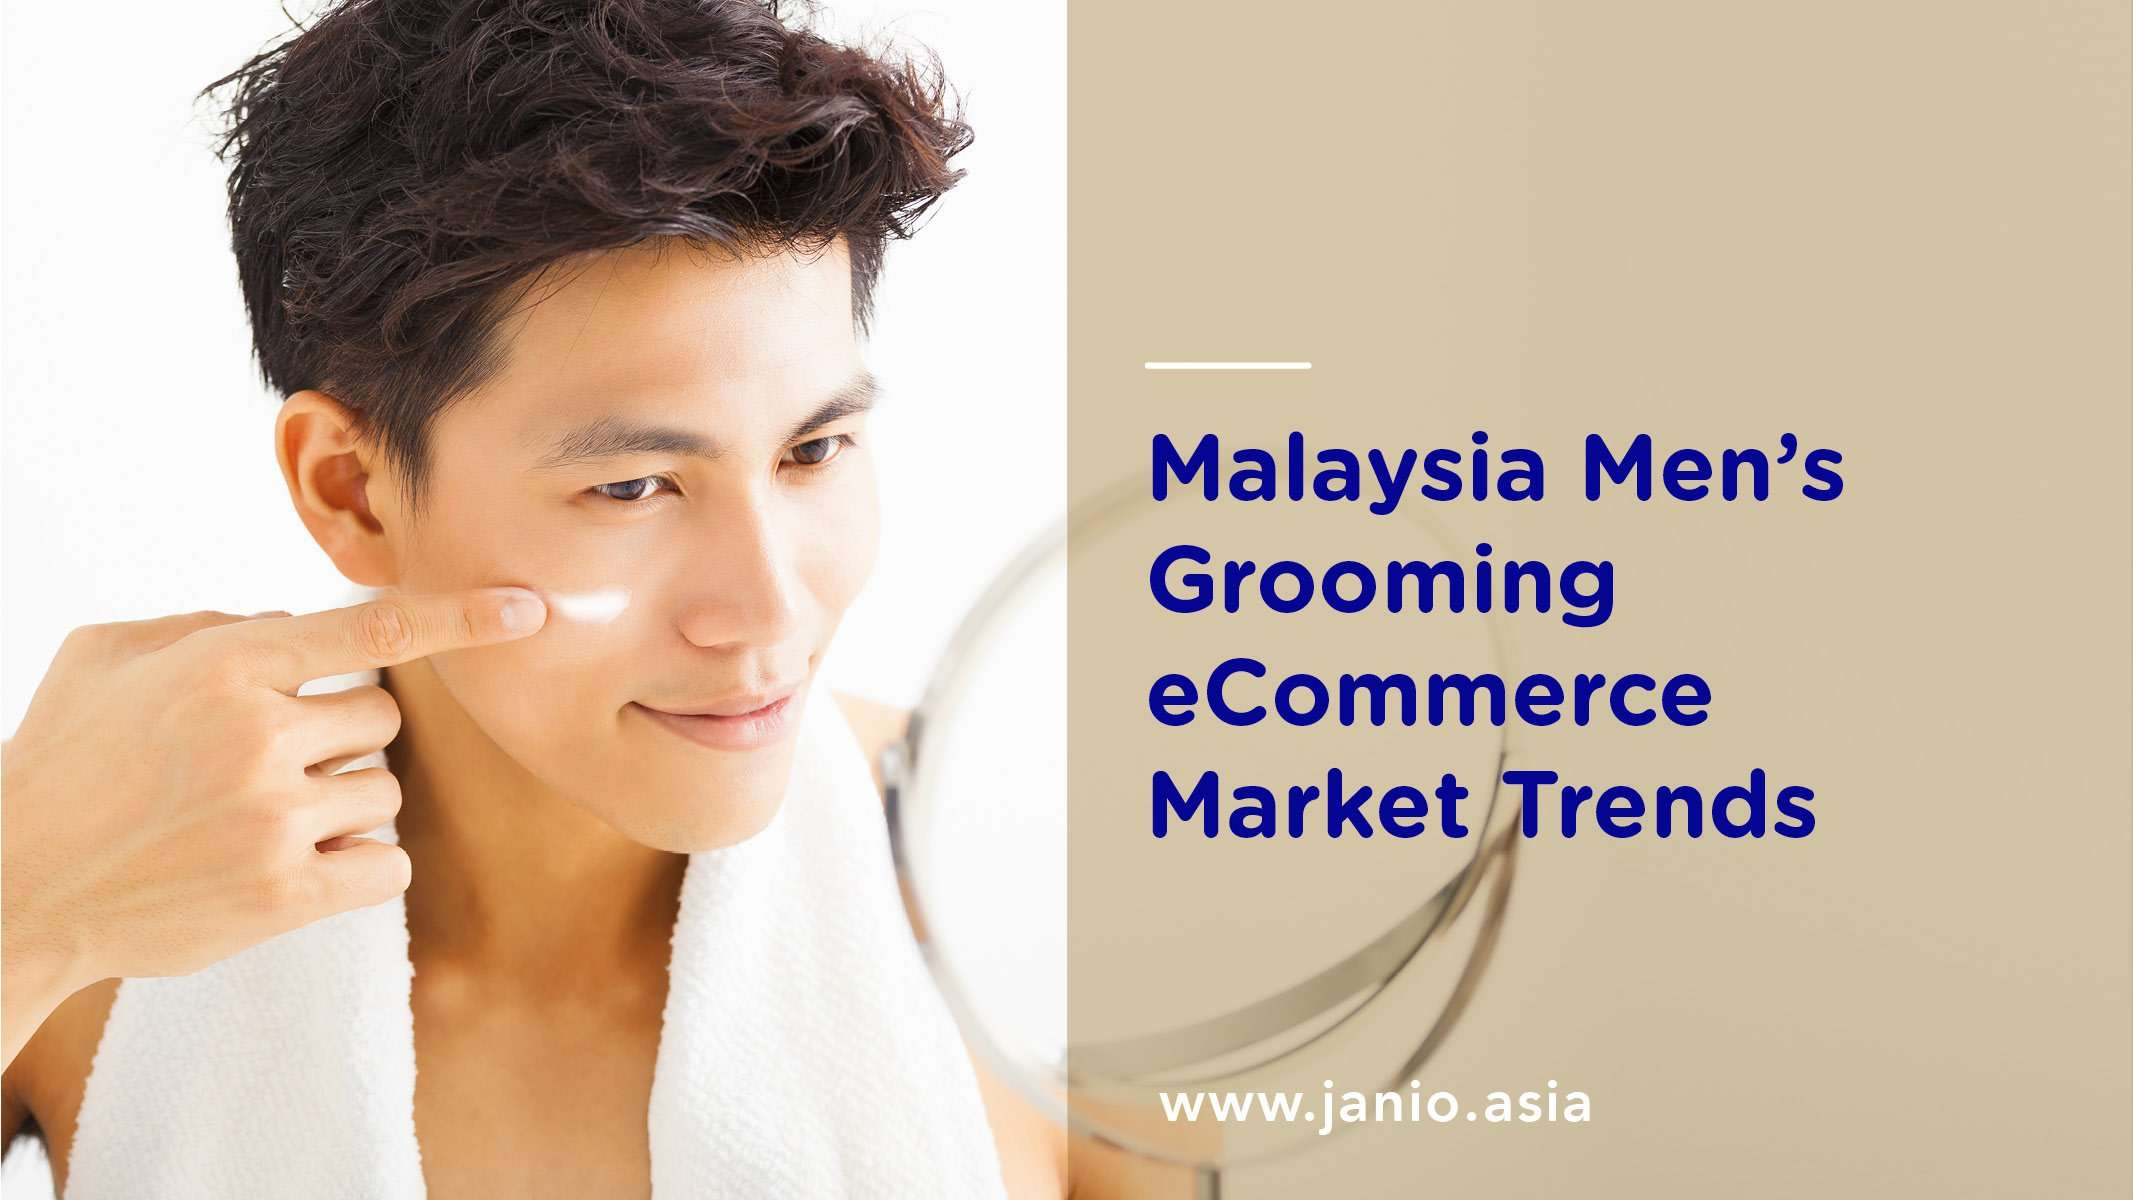 Malaysia Men's Grooming eCommerce Market Trends: Calling it Self-confidence